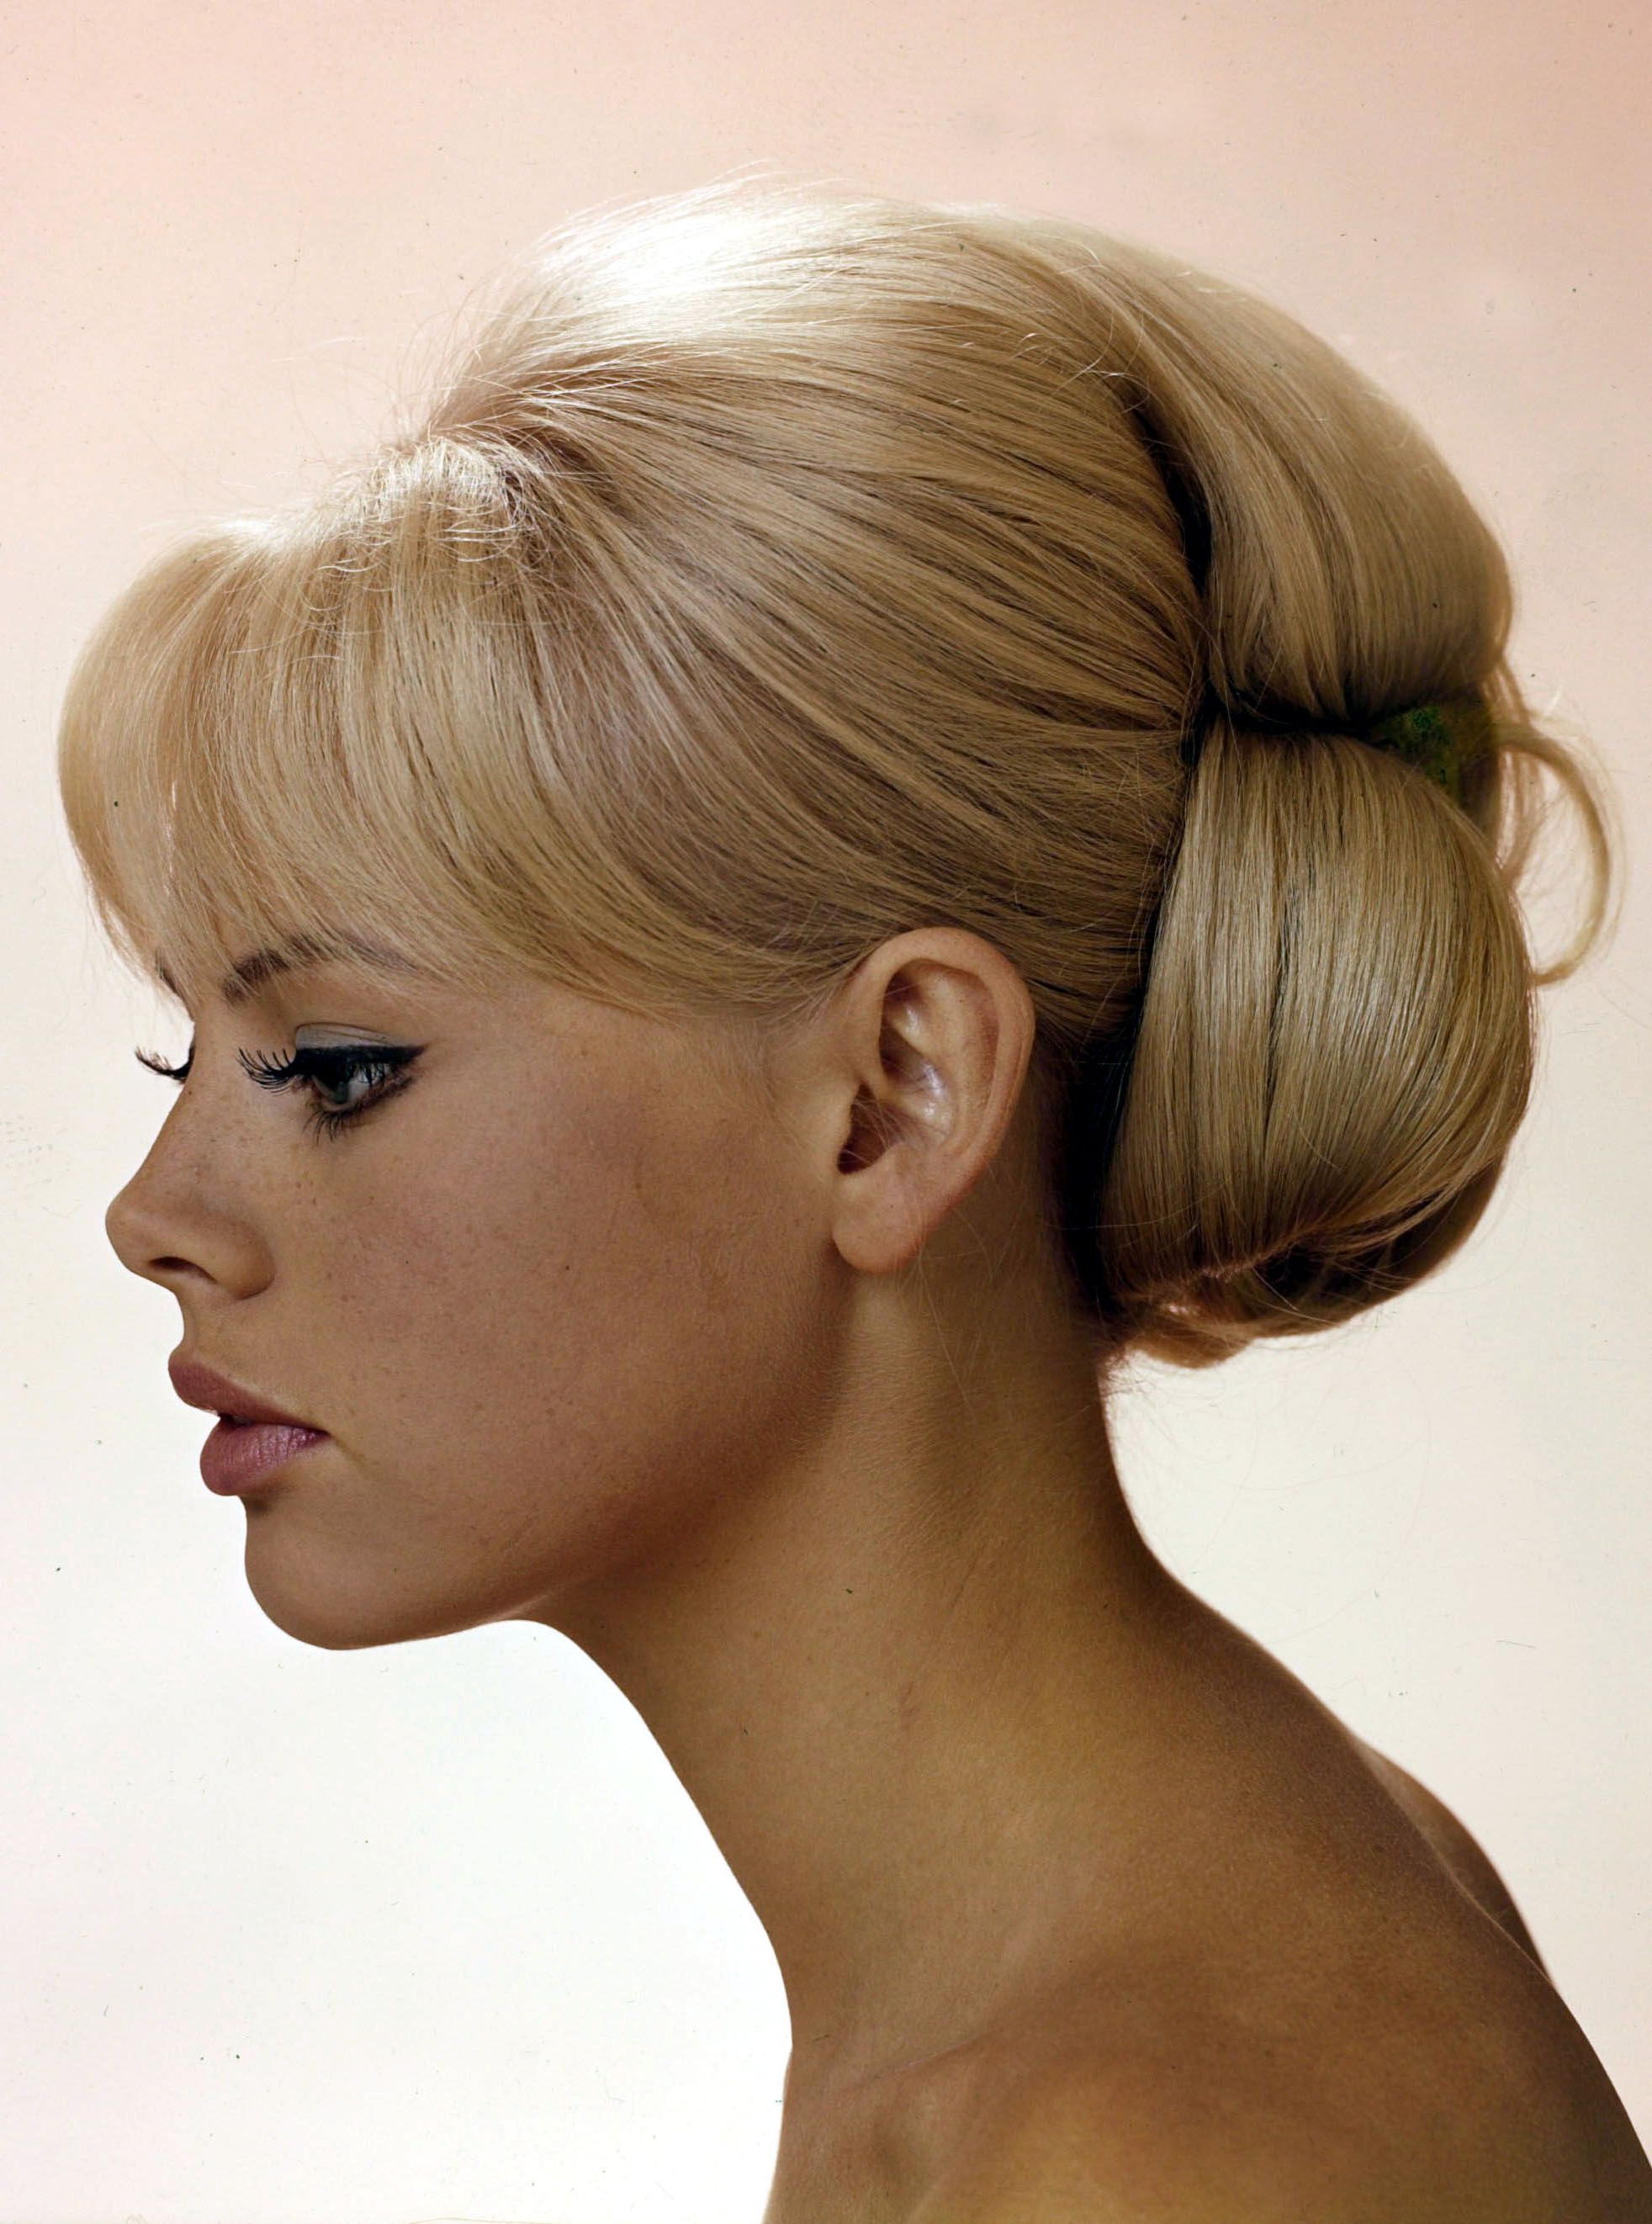 50S 60S Style. So I Looked Up Vintage Wedding Intended For Well Known Sleek Low Bun Rosy Outlook Wedding Updos (Gallery 4 of 20)